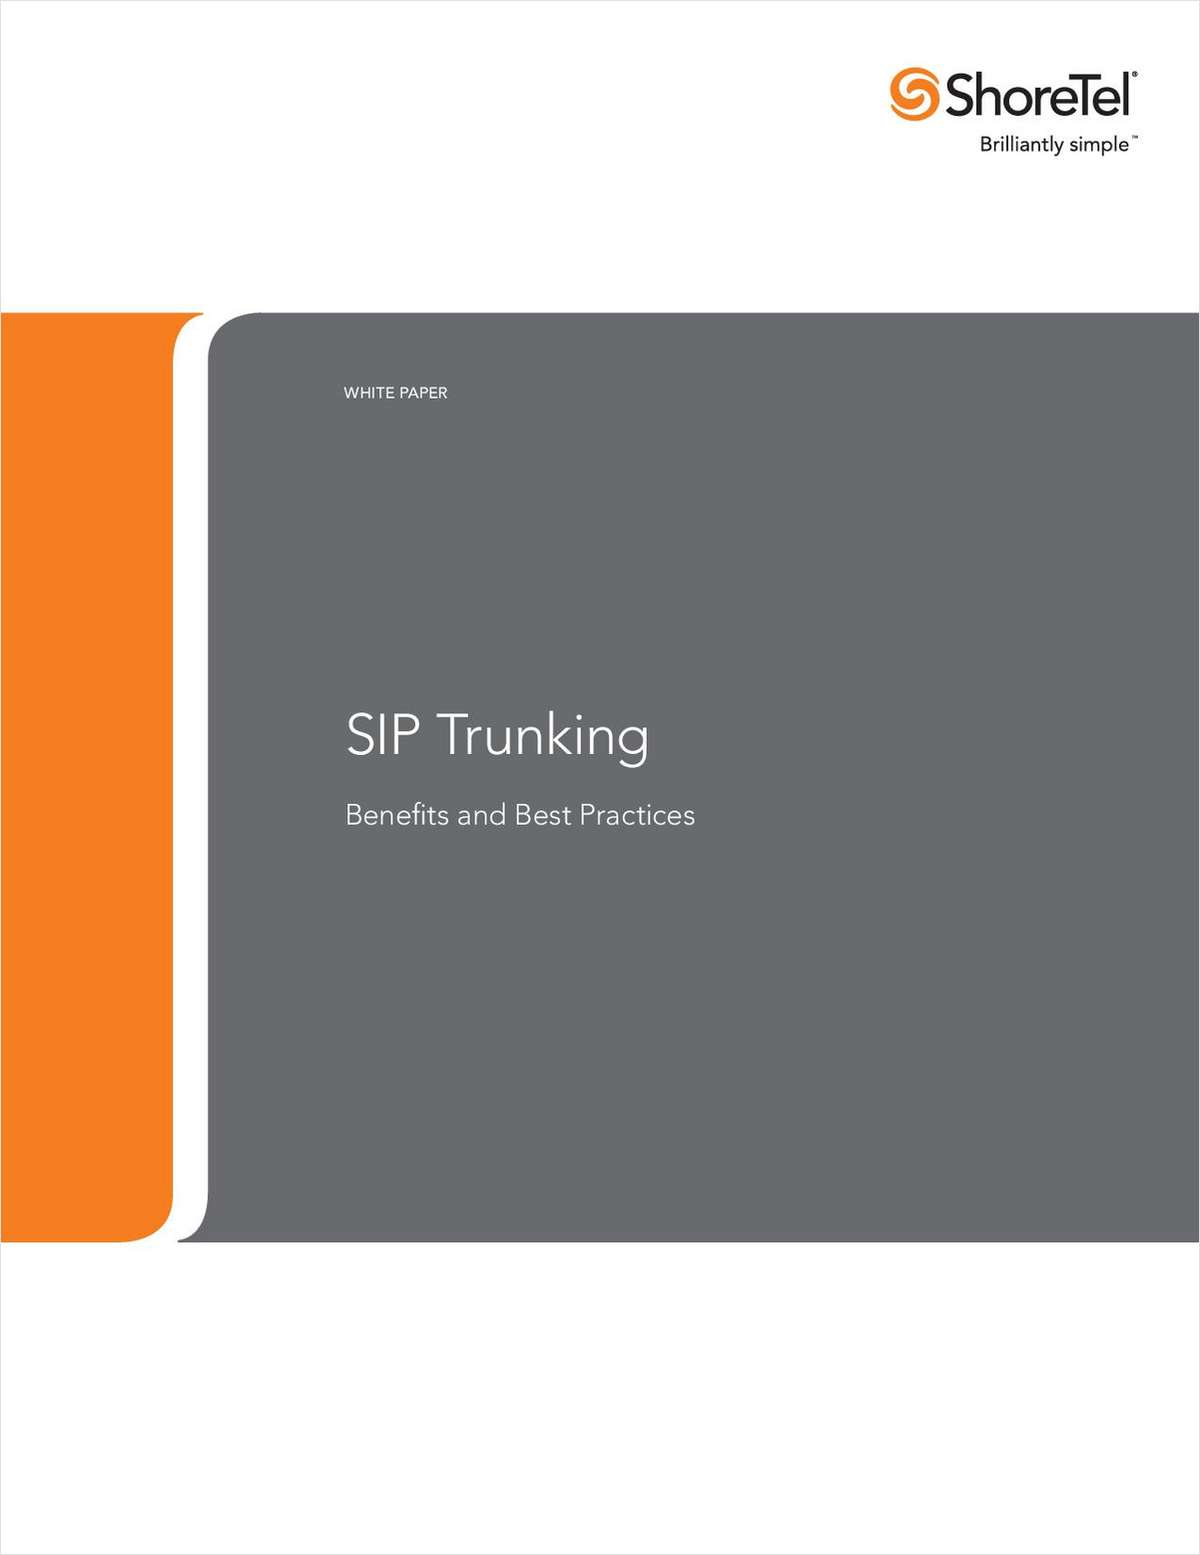 SIP Trunks - Benefits and Best Practices